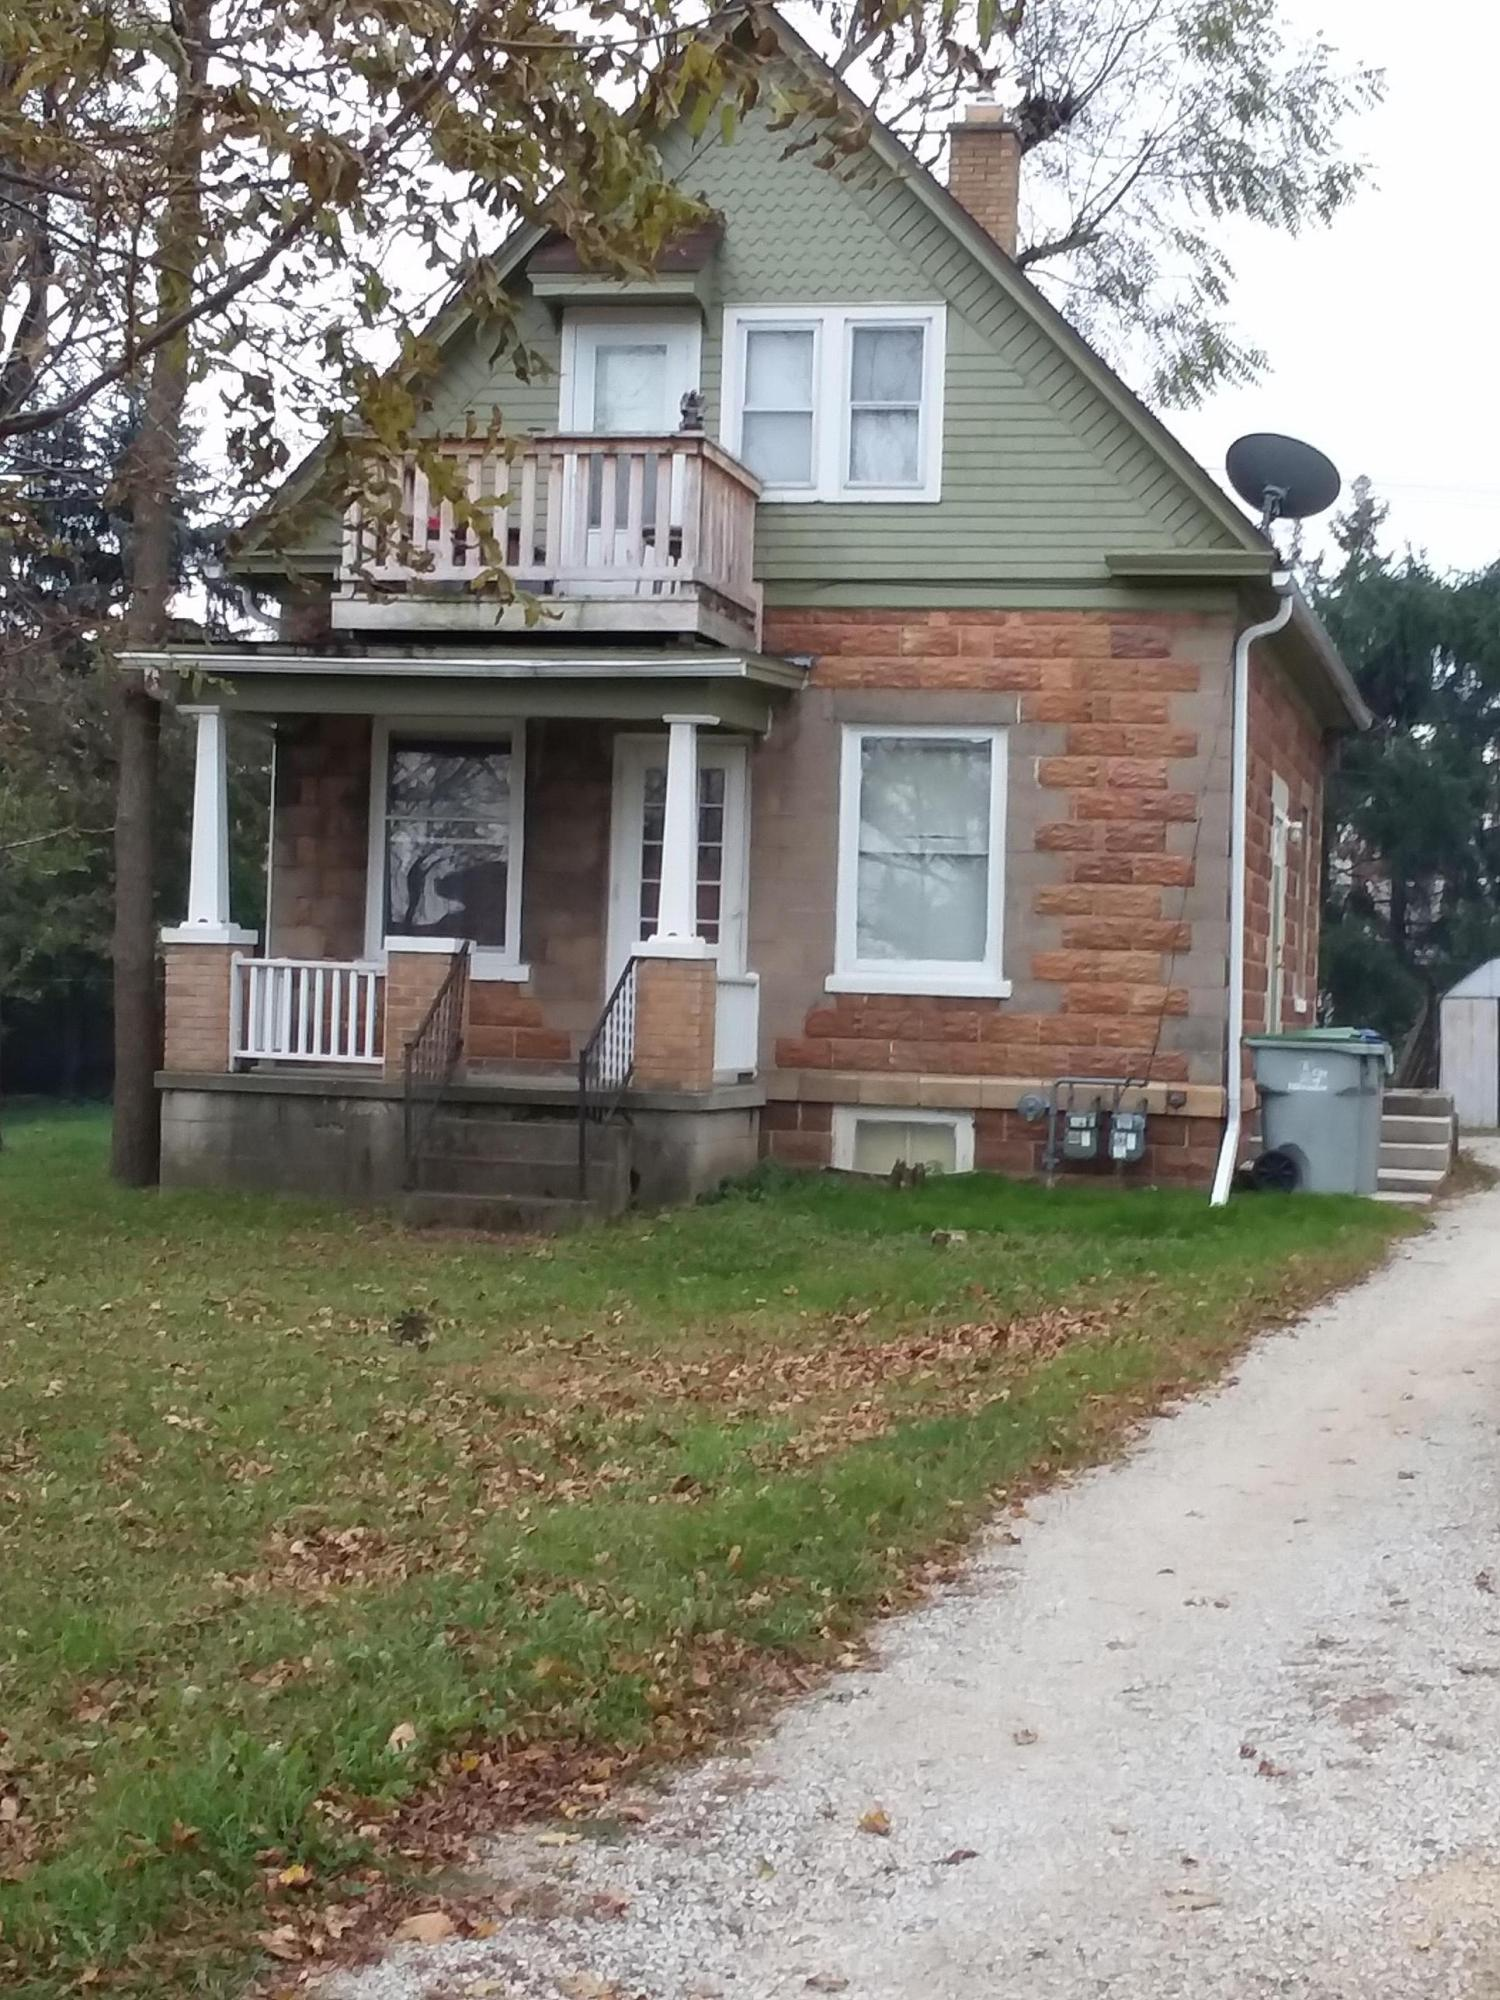 7325 Howard Ave, Milwaukee, Wisconsin 53220, 2 Bedrooms Bedrooms, 4 Rooms Rooms,1 BathroomBathrooms,Two-Family,For Sale,Howard Ave,1,1614590